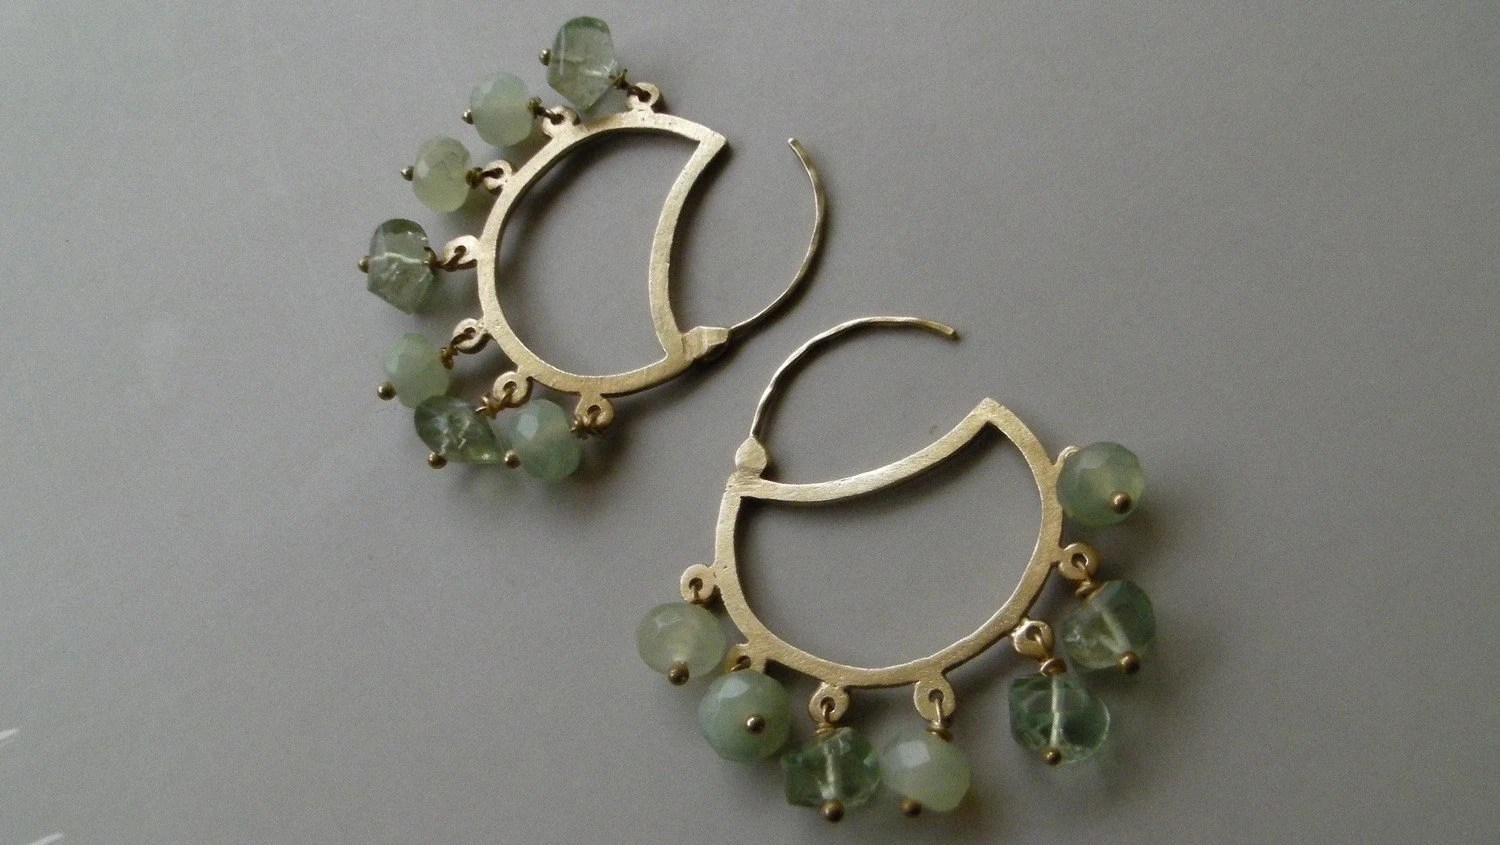 JADE and PRENITE CRESCENTS, Earrings in 18k Solid Gold - GiliForshmit